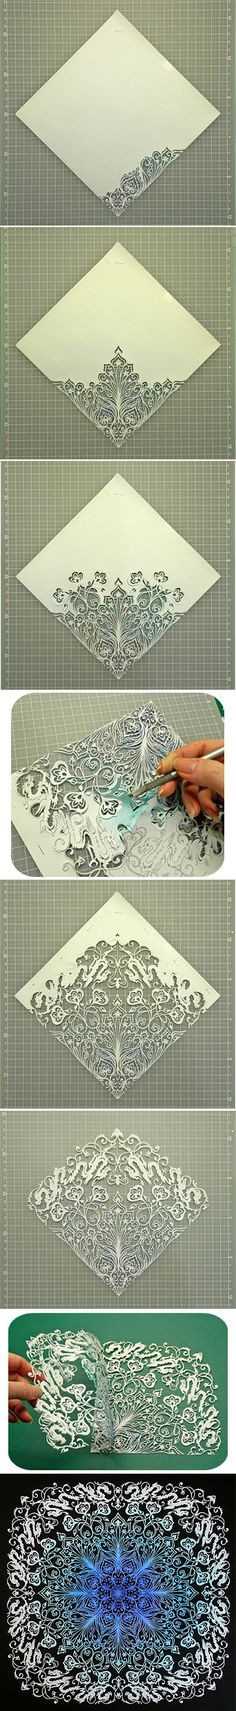 [] Japanese Kirigami Art (Cut Paper) tutorial (pictures only) by Syandery. (Link…                                                                                                                                                                                 もっと見る